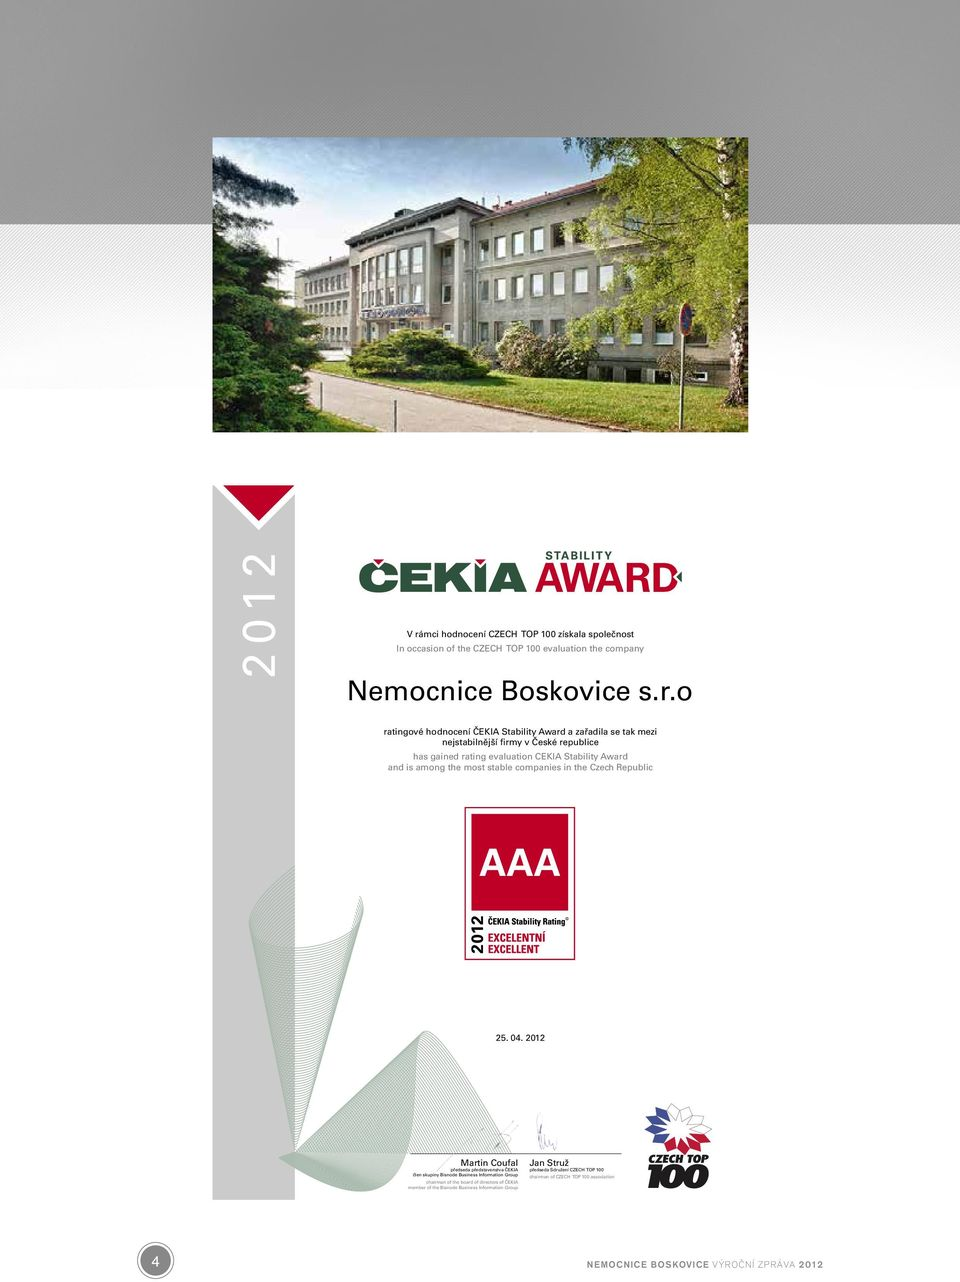 o ratingové hodnocení ČEKIA Stability Award a zařadila se tak mezi nejstabilnější firmy v České republice has gained rating evaluation CEKIA Stability Award and is